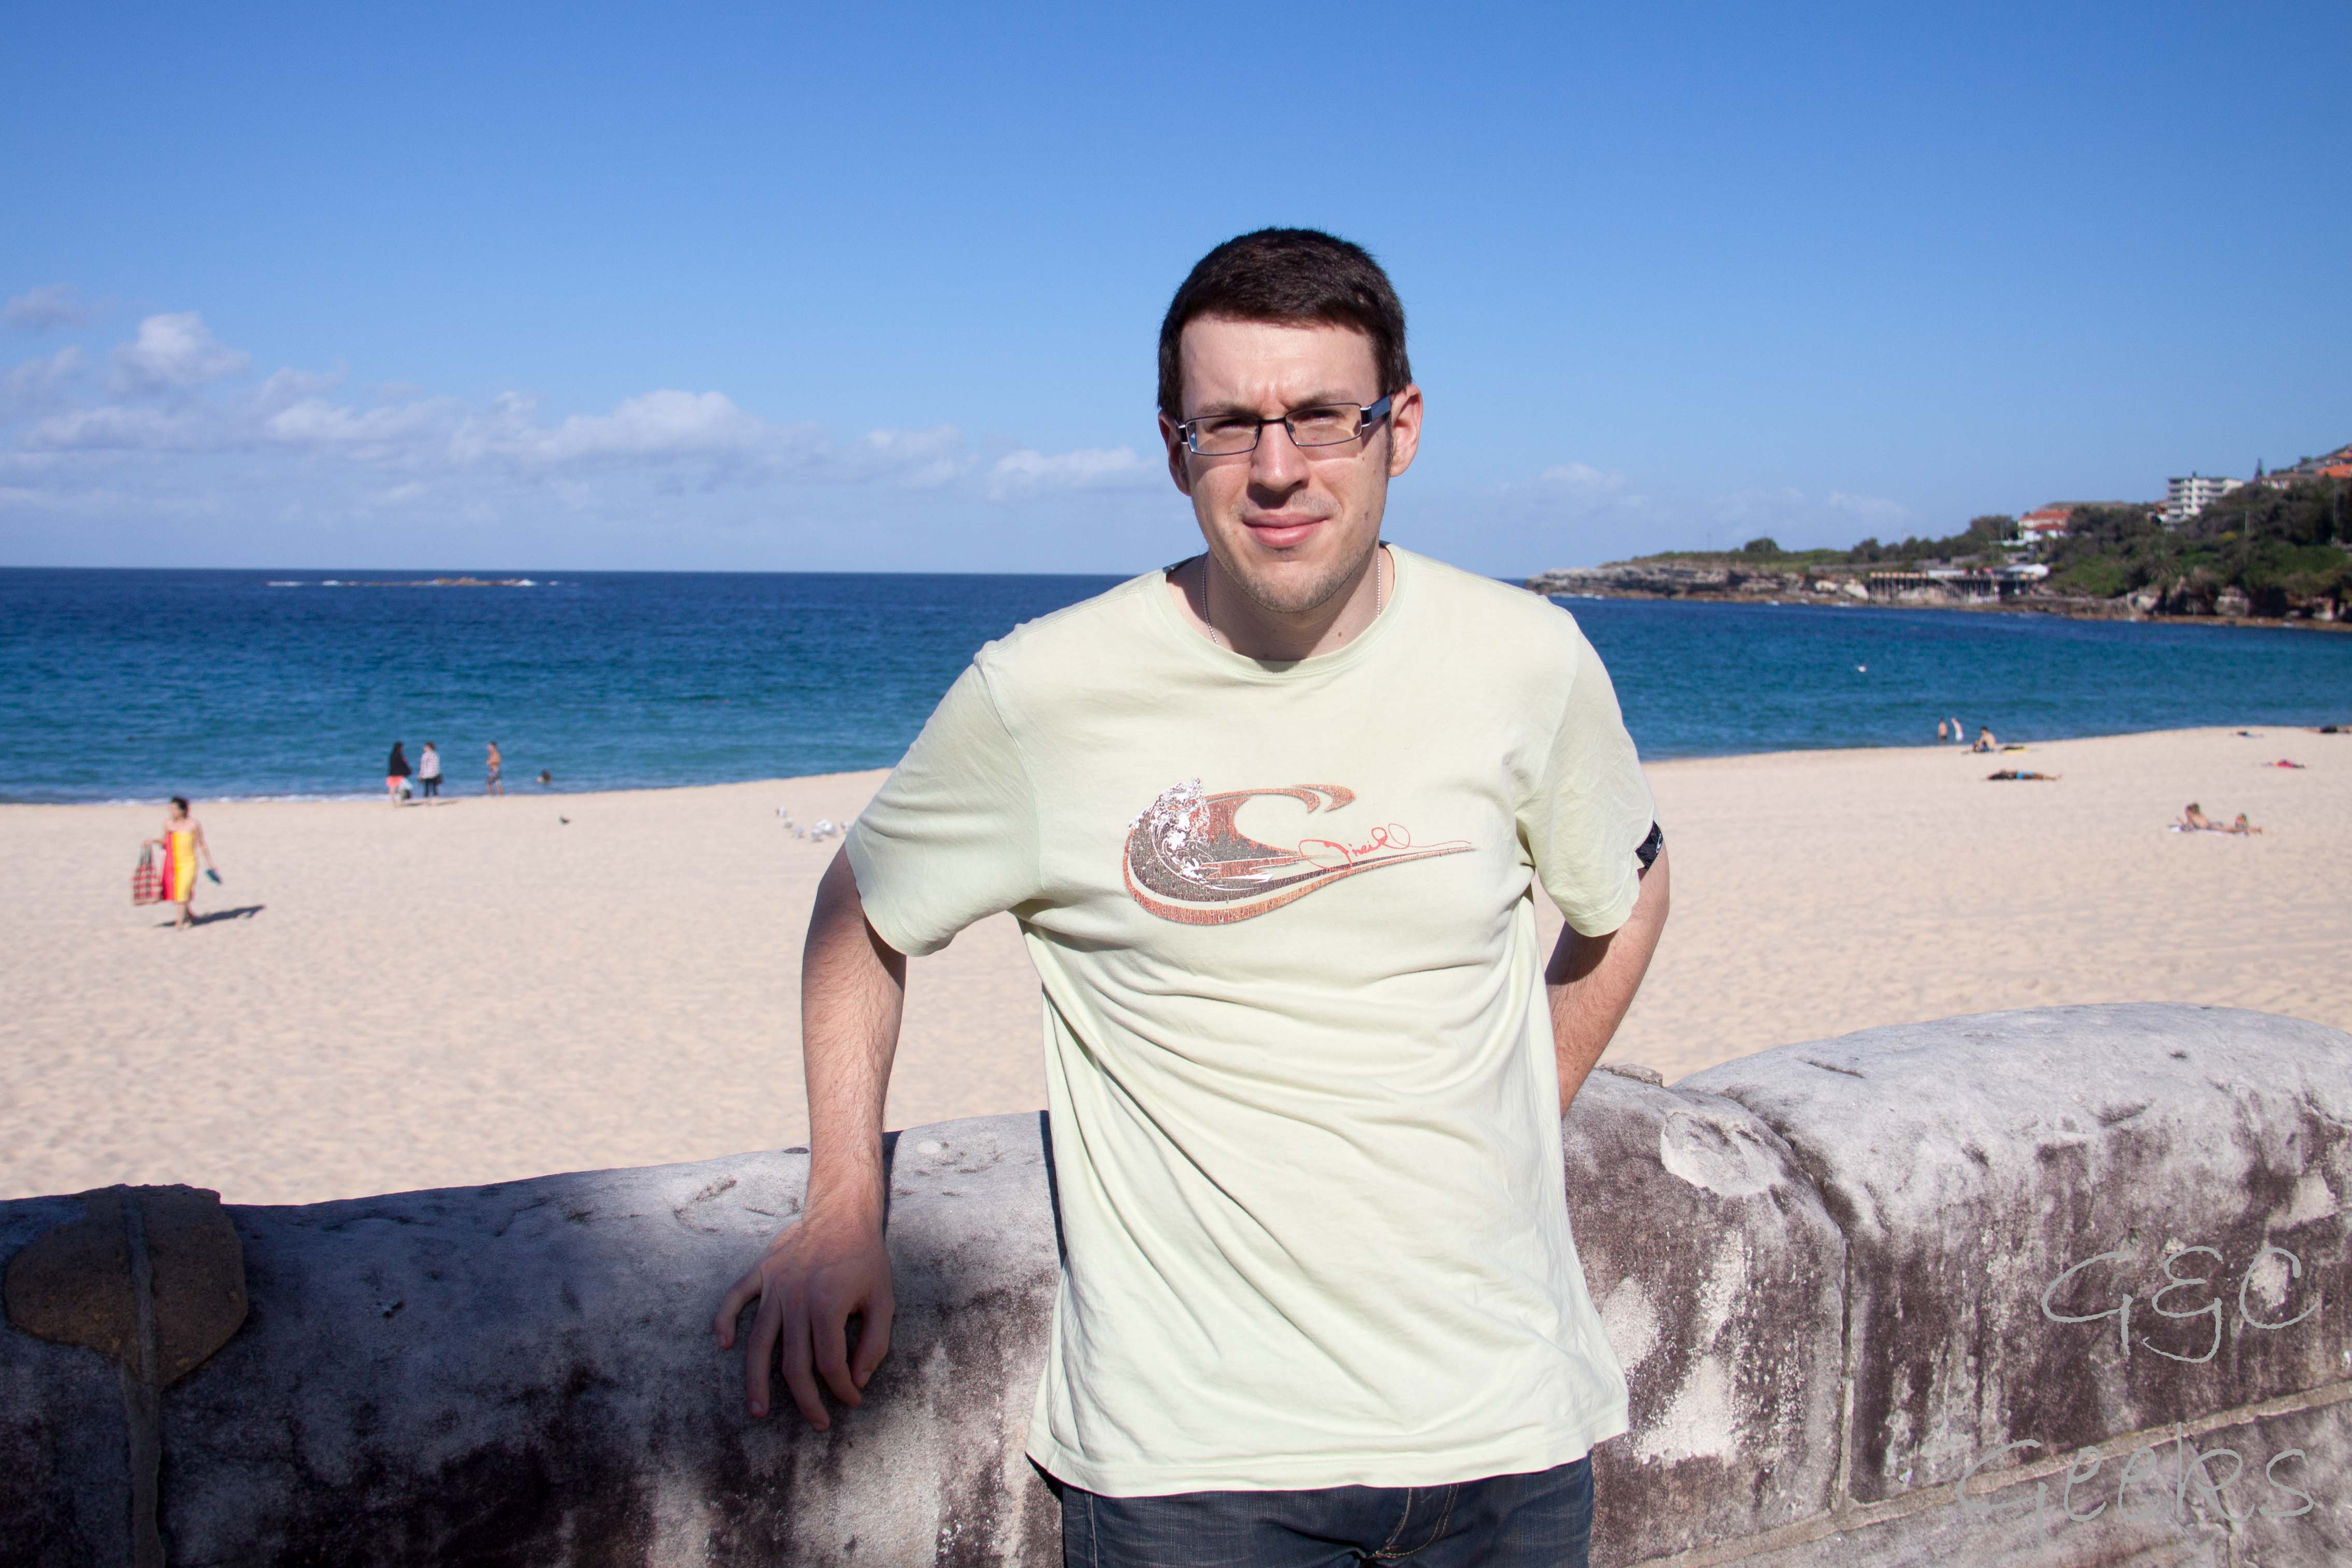 coogee beach guillaume